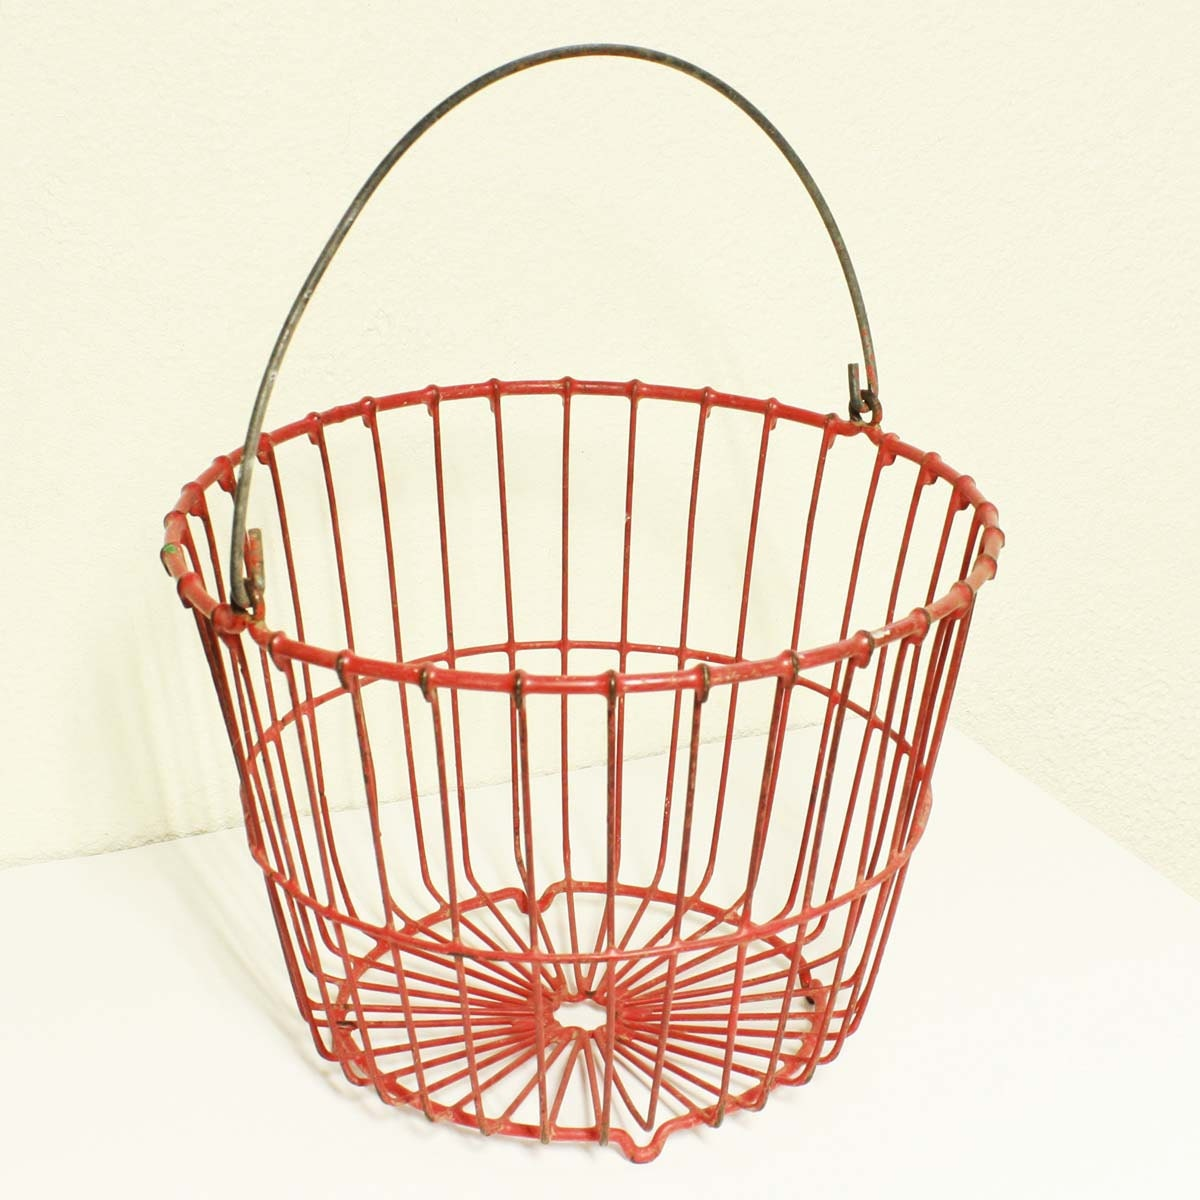 Vintage metal wire basket egg basket red round by  : il570xN246758737 from www.etsy.com size 570 x 570 jpeg 70kB